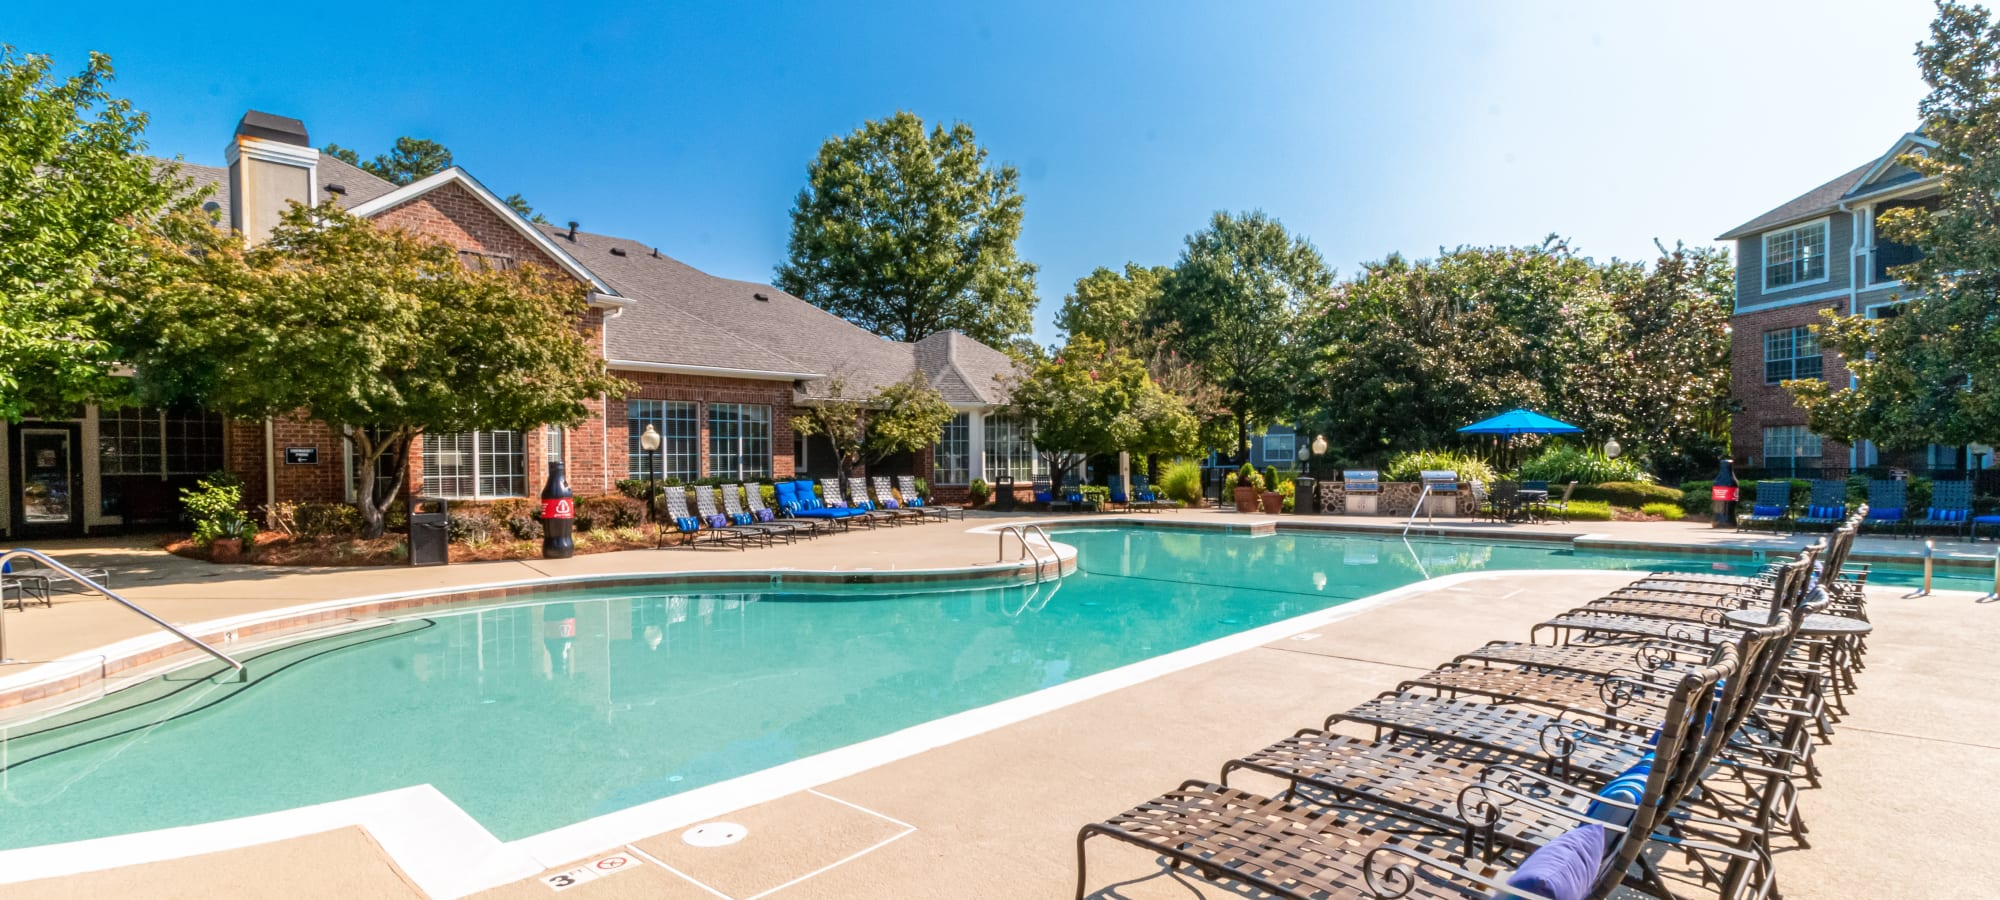 Apartments at Marquis of Carmel Valley in Charlotte, North Carolina